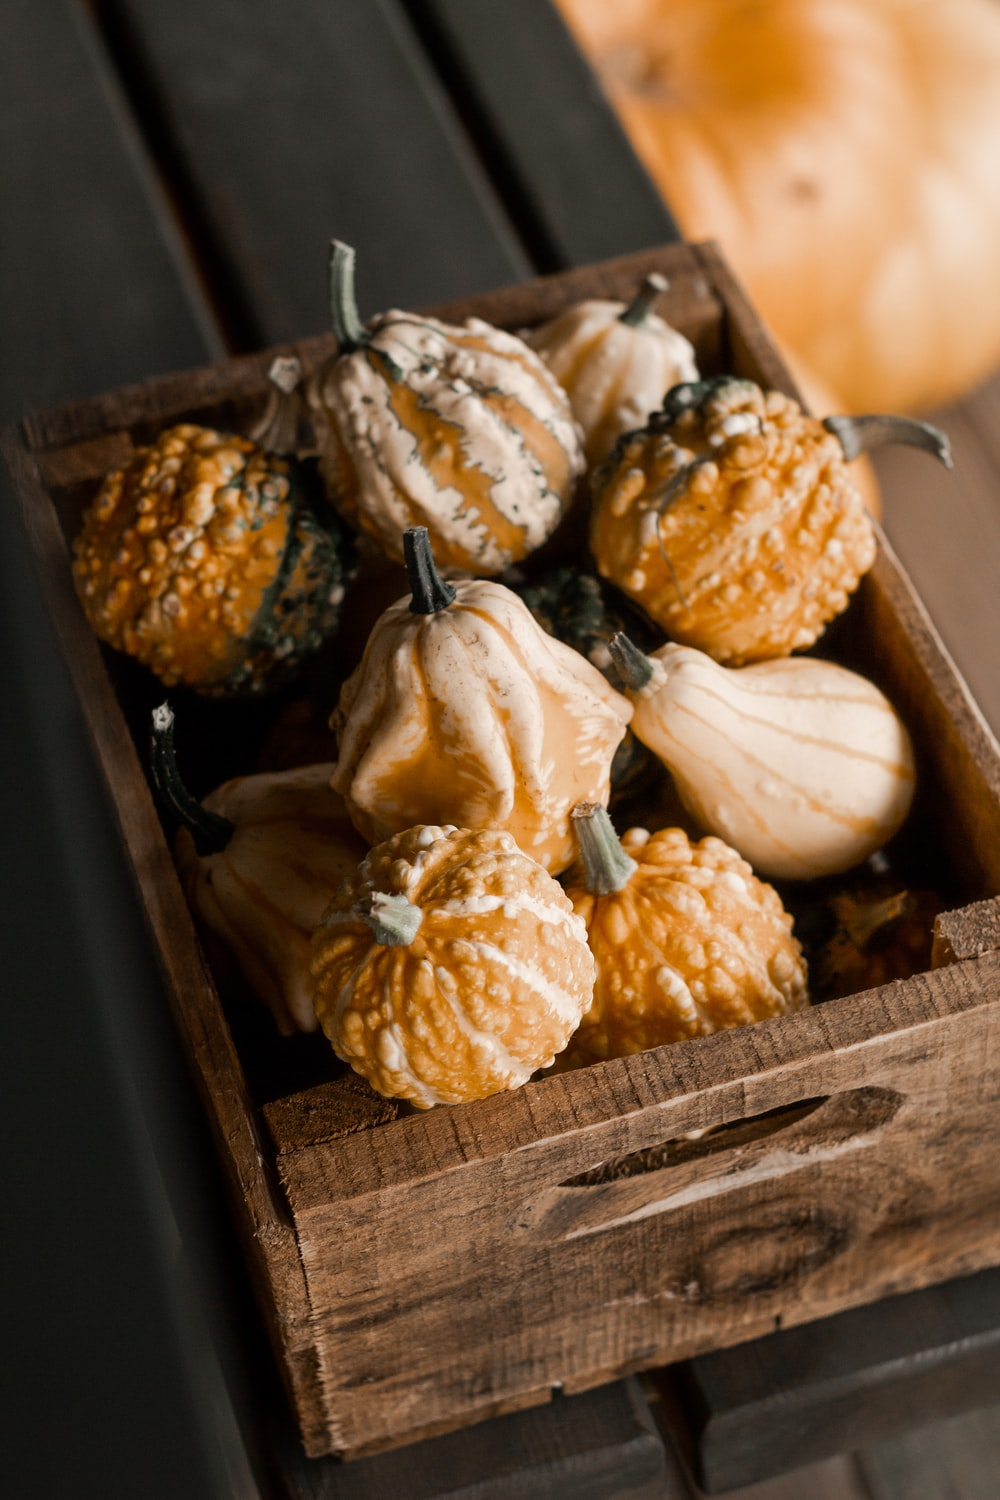 white and brown garlic on brown wooden tray